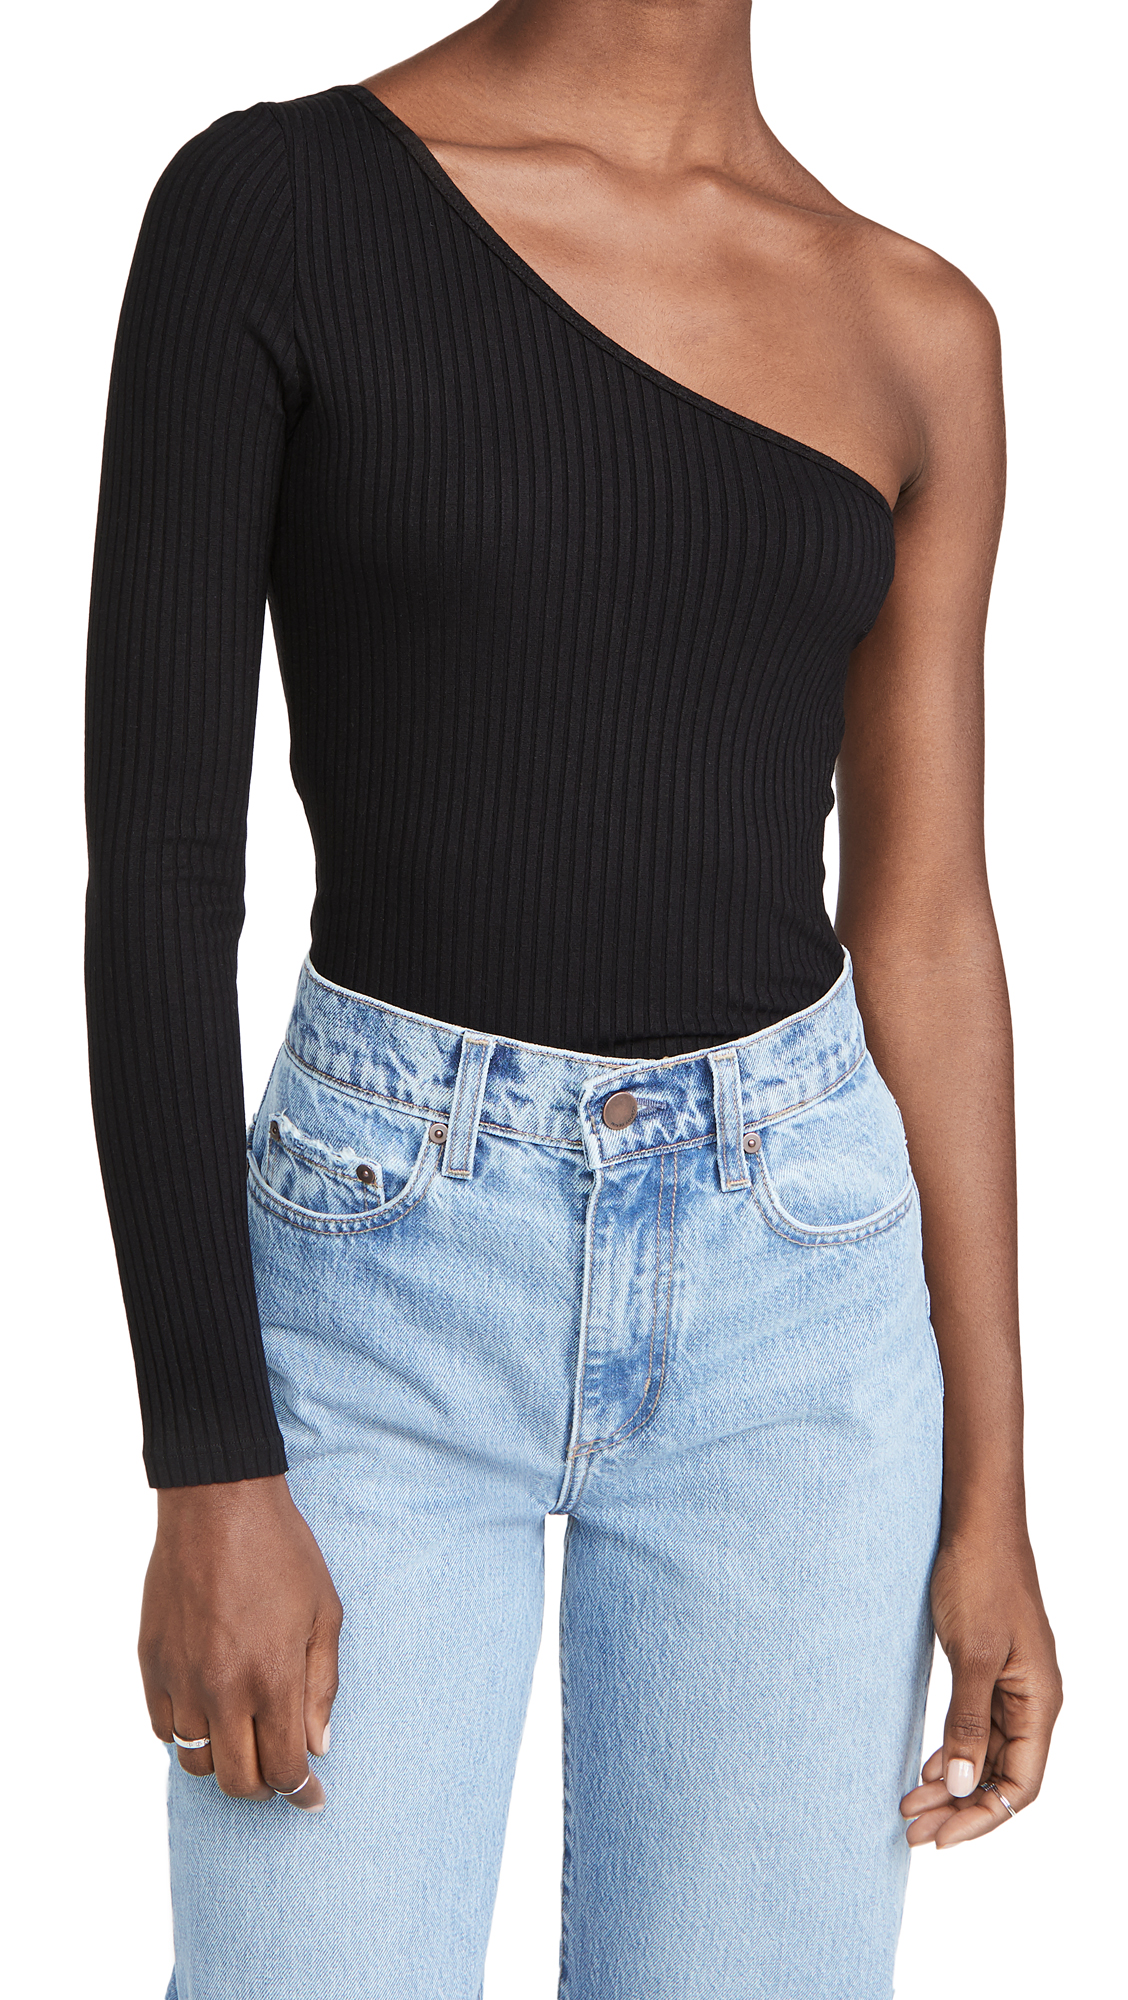 NOBODY DENIM LUXE RIB LONG SLEEVE ONE SHOULDER TOP